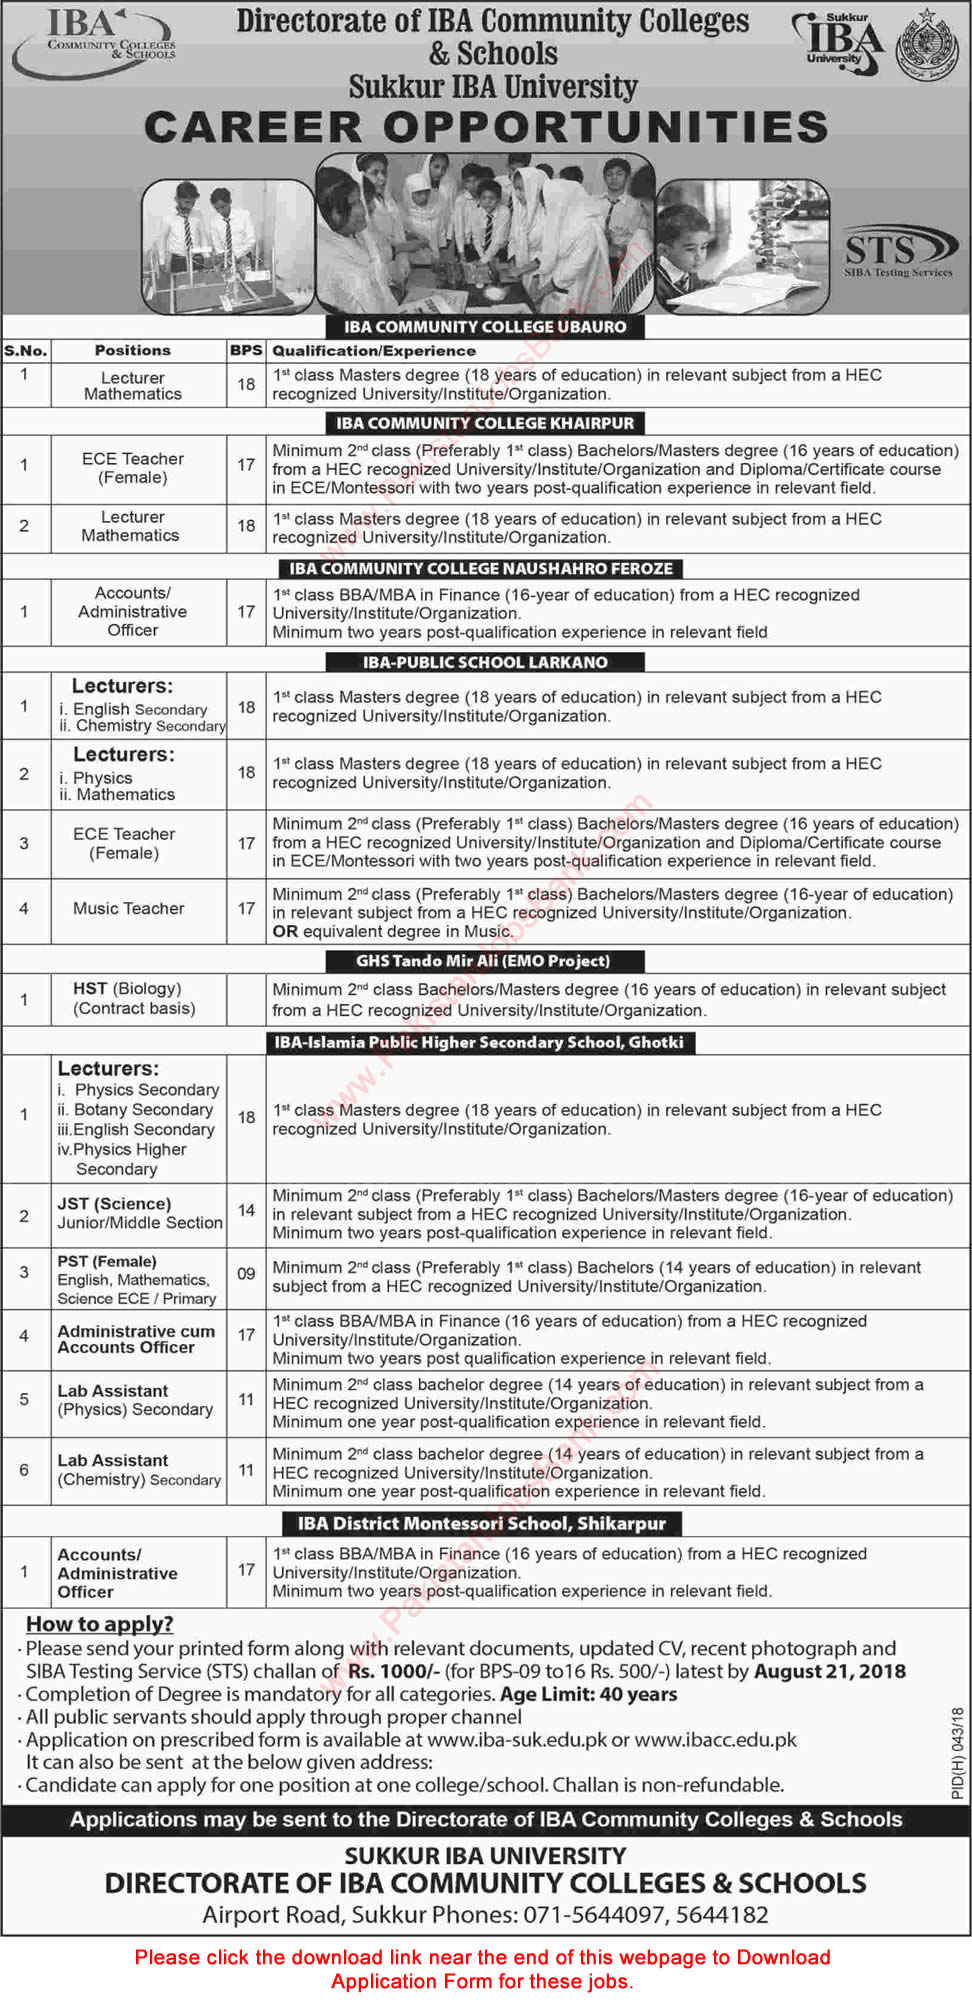 Directorate of IBA Community Colleges and Schools Jobs August 2018 Application Form Download Latest